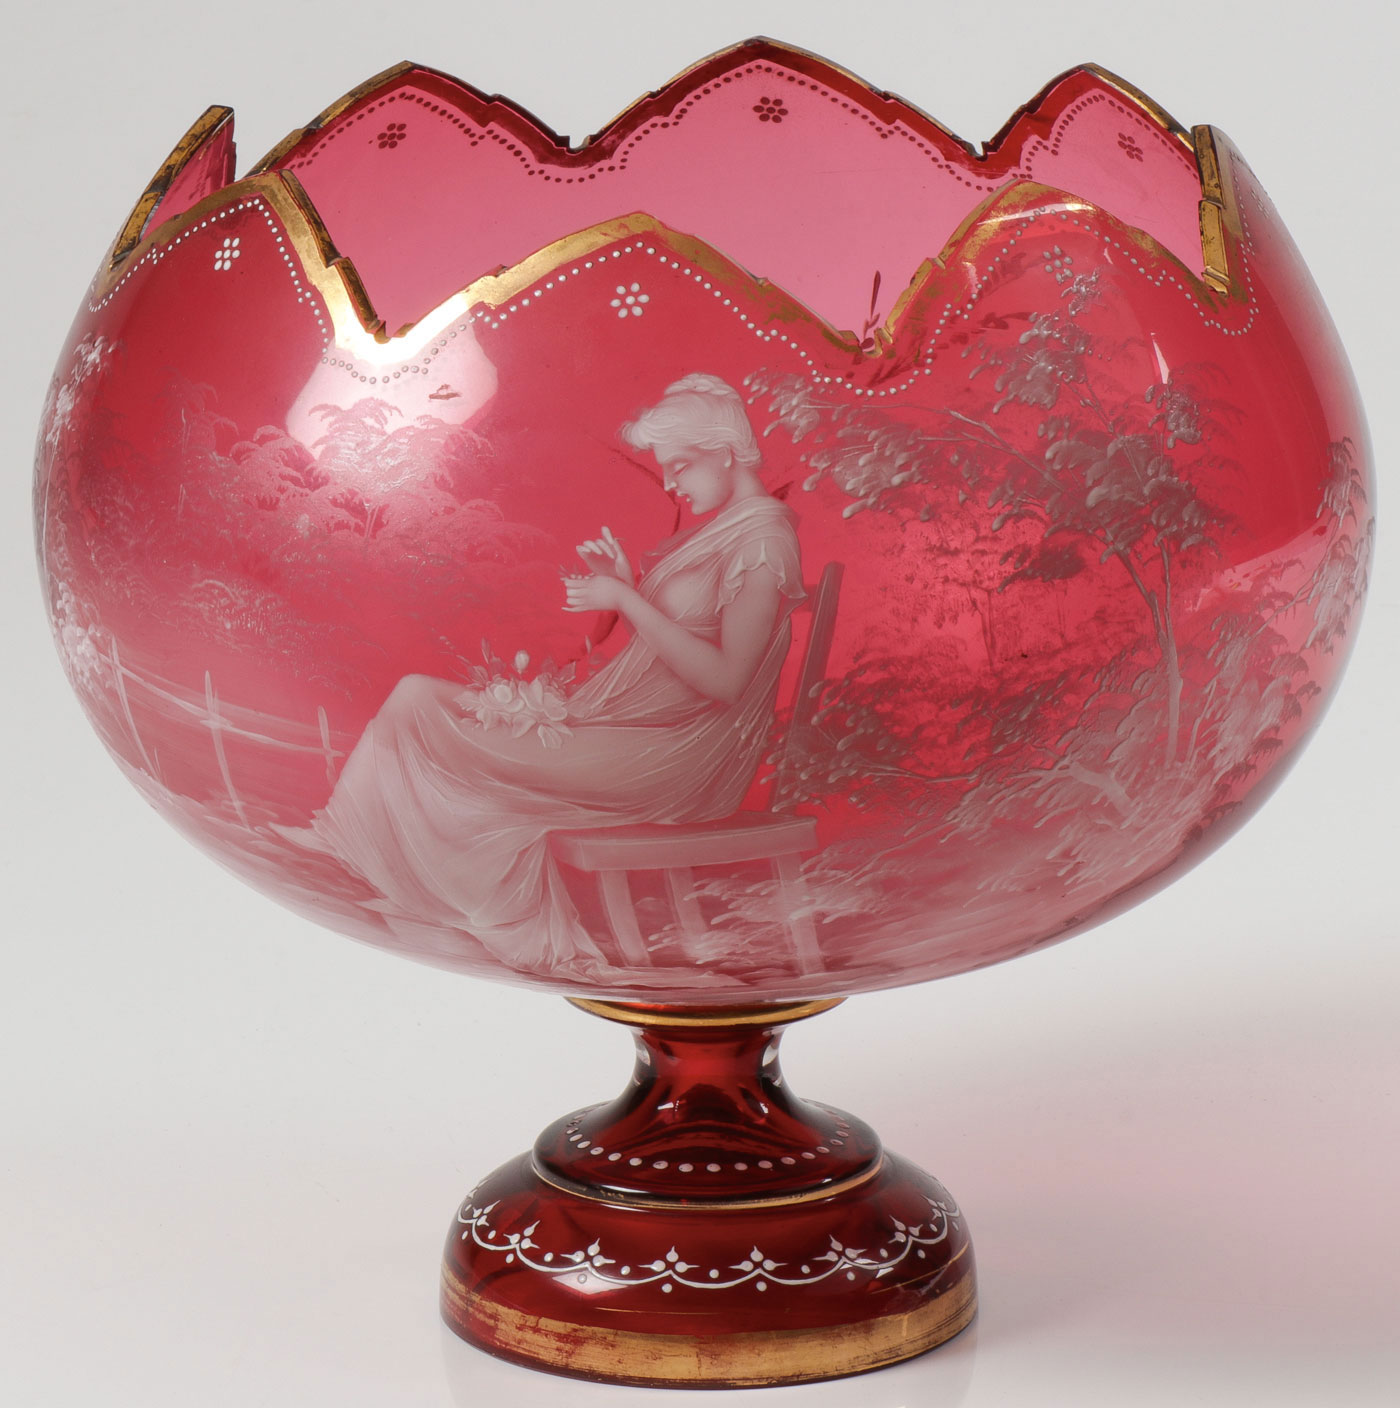 Lot 5 - EXCEPTIONAL MARY GREGORY CRANBERRY BOWL